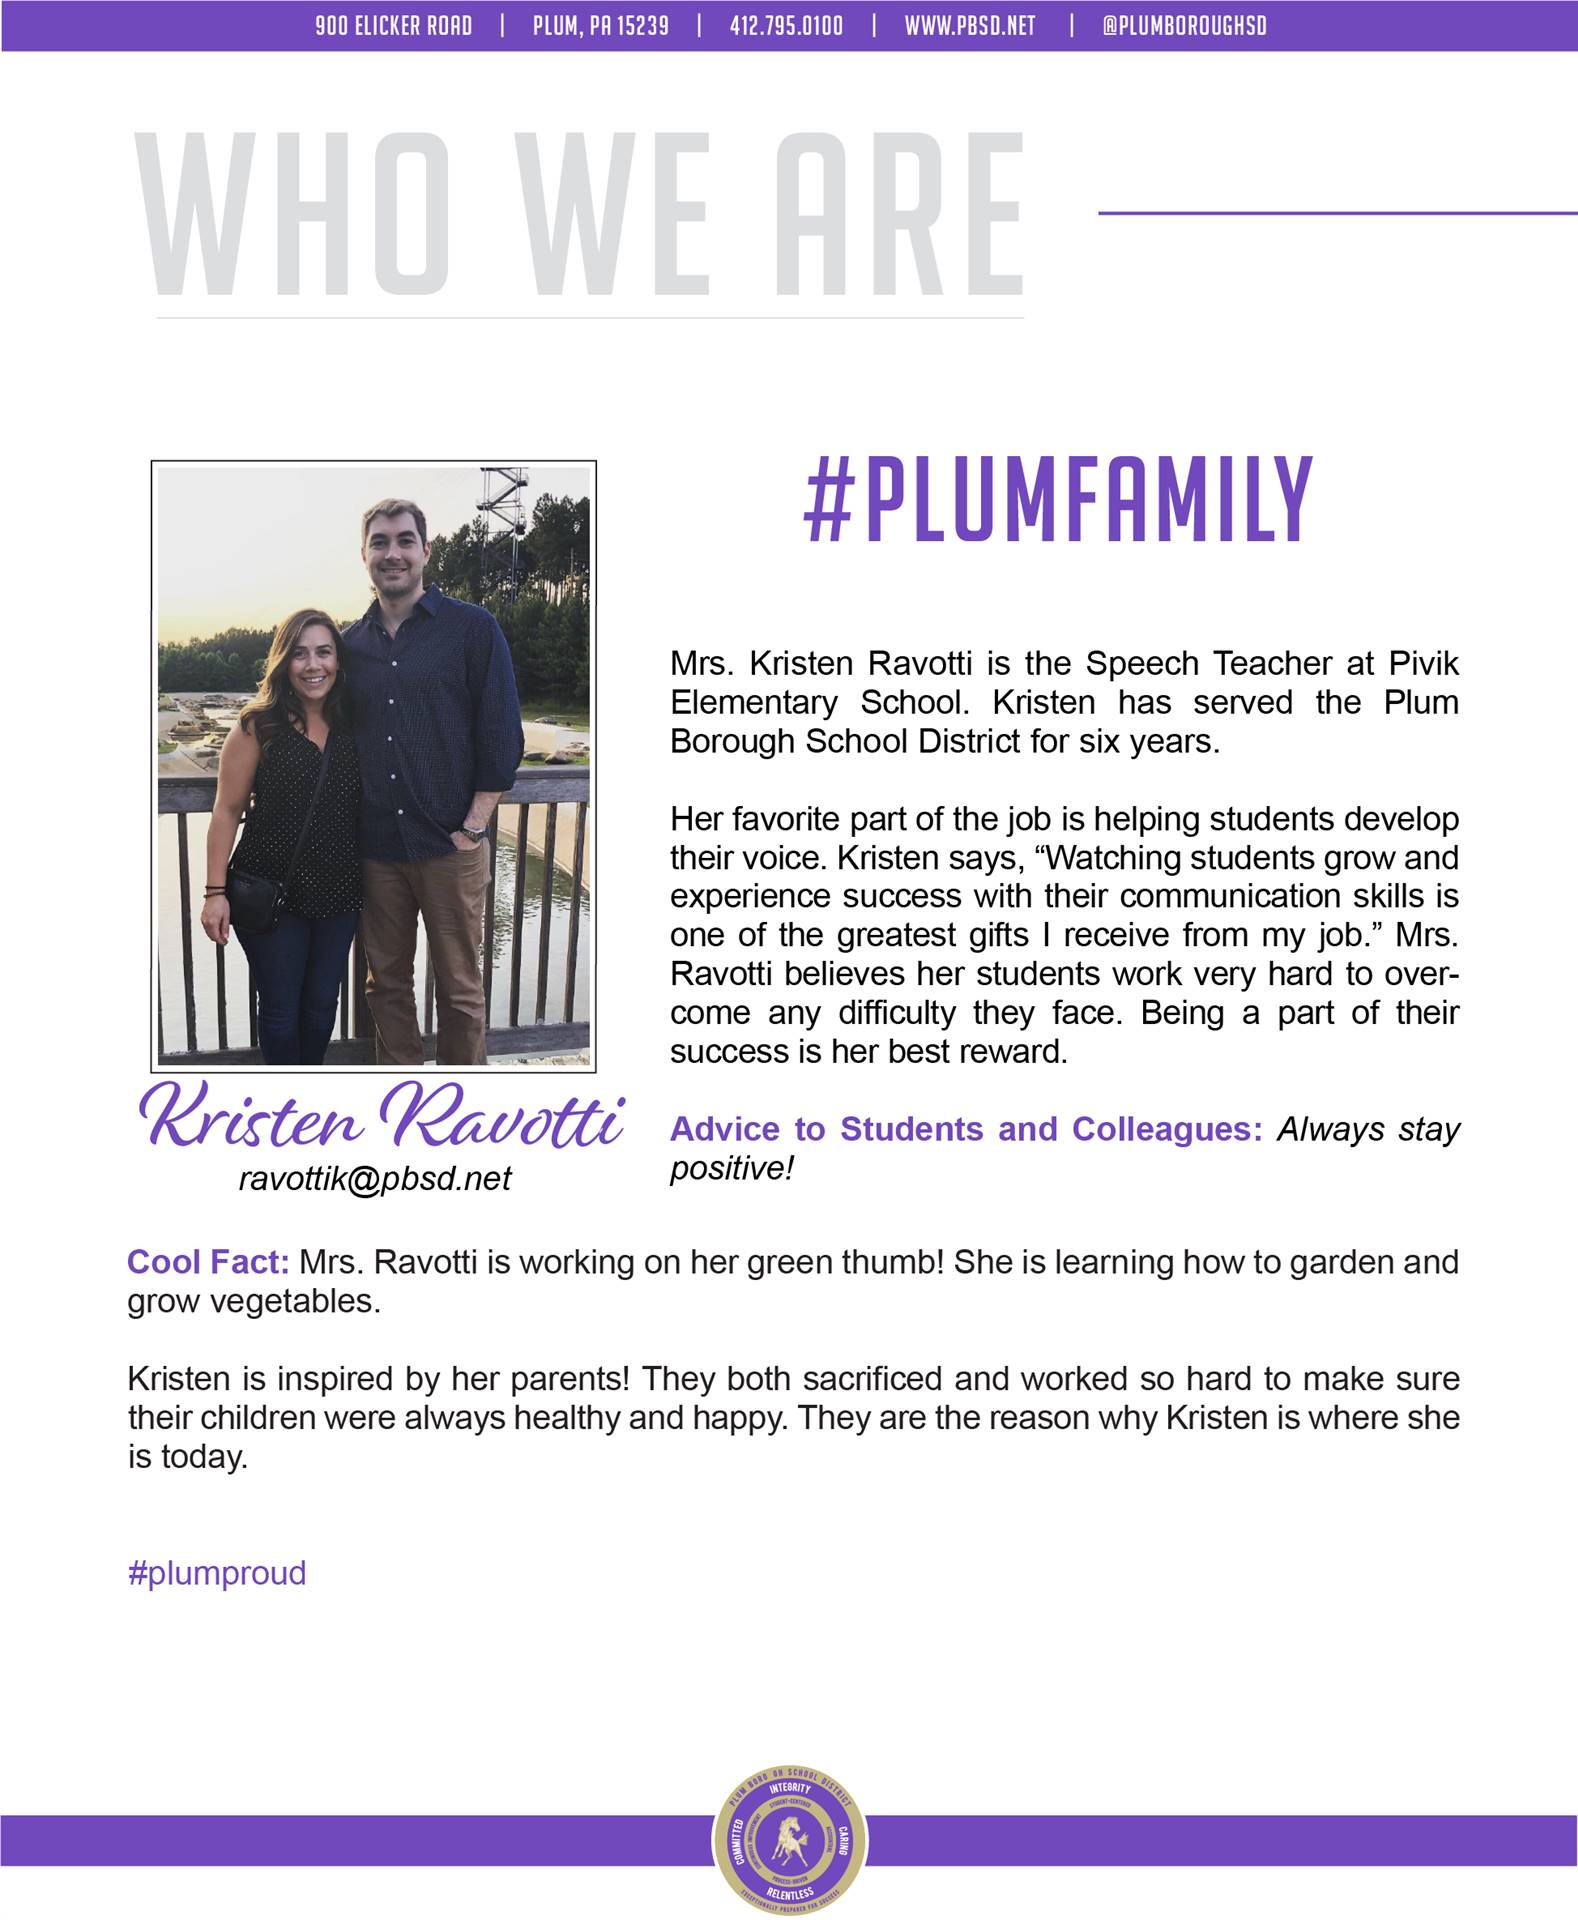 Who We Are Wednesday features Kristin Ravotti.